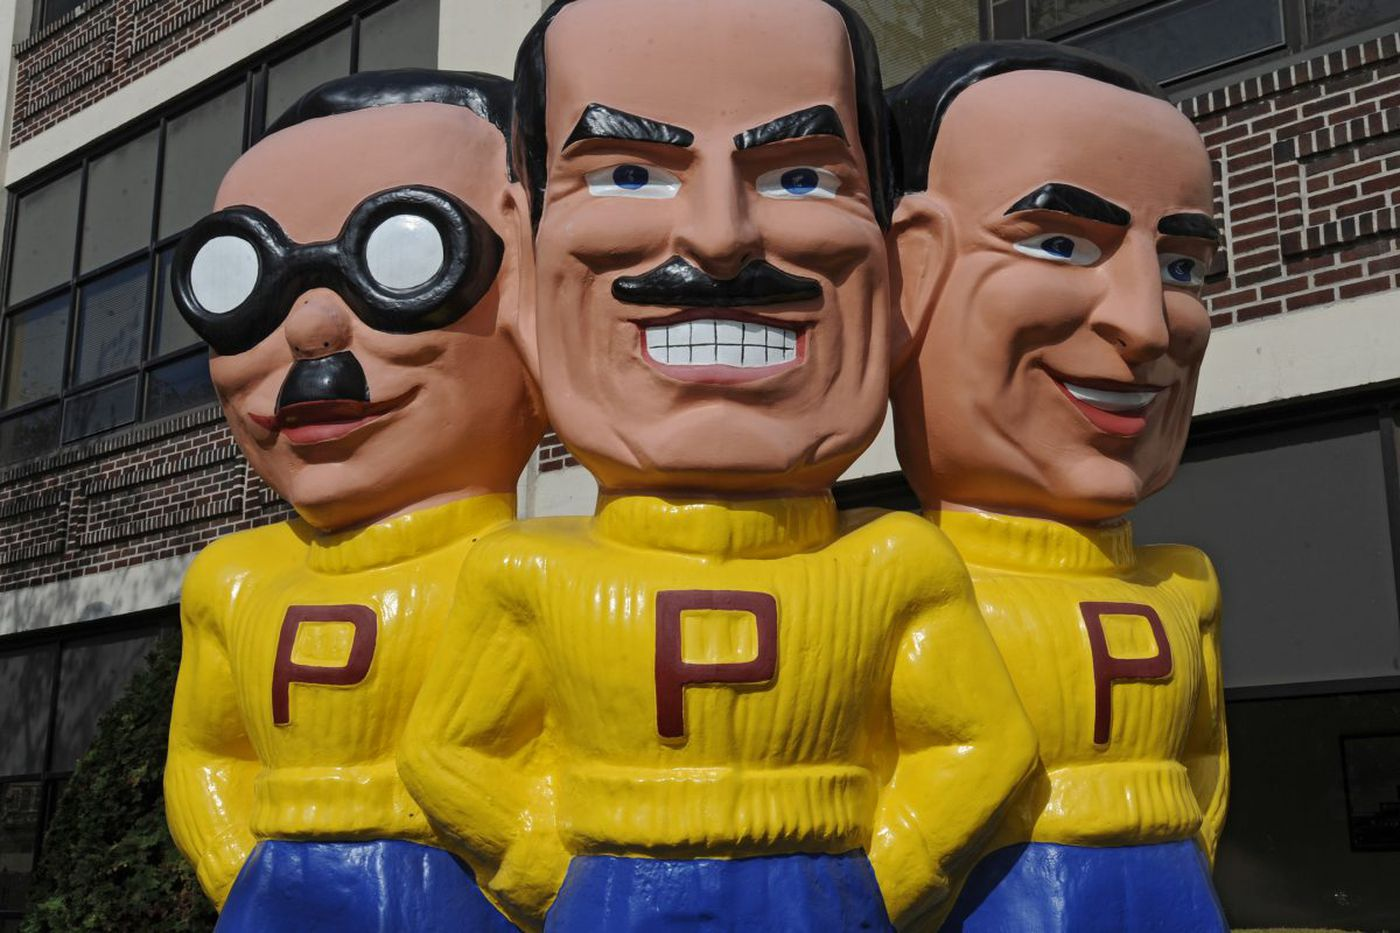 Onetime Icahn lawyer is the new boss at Pep Boys' parent